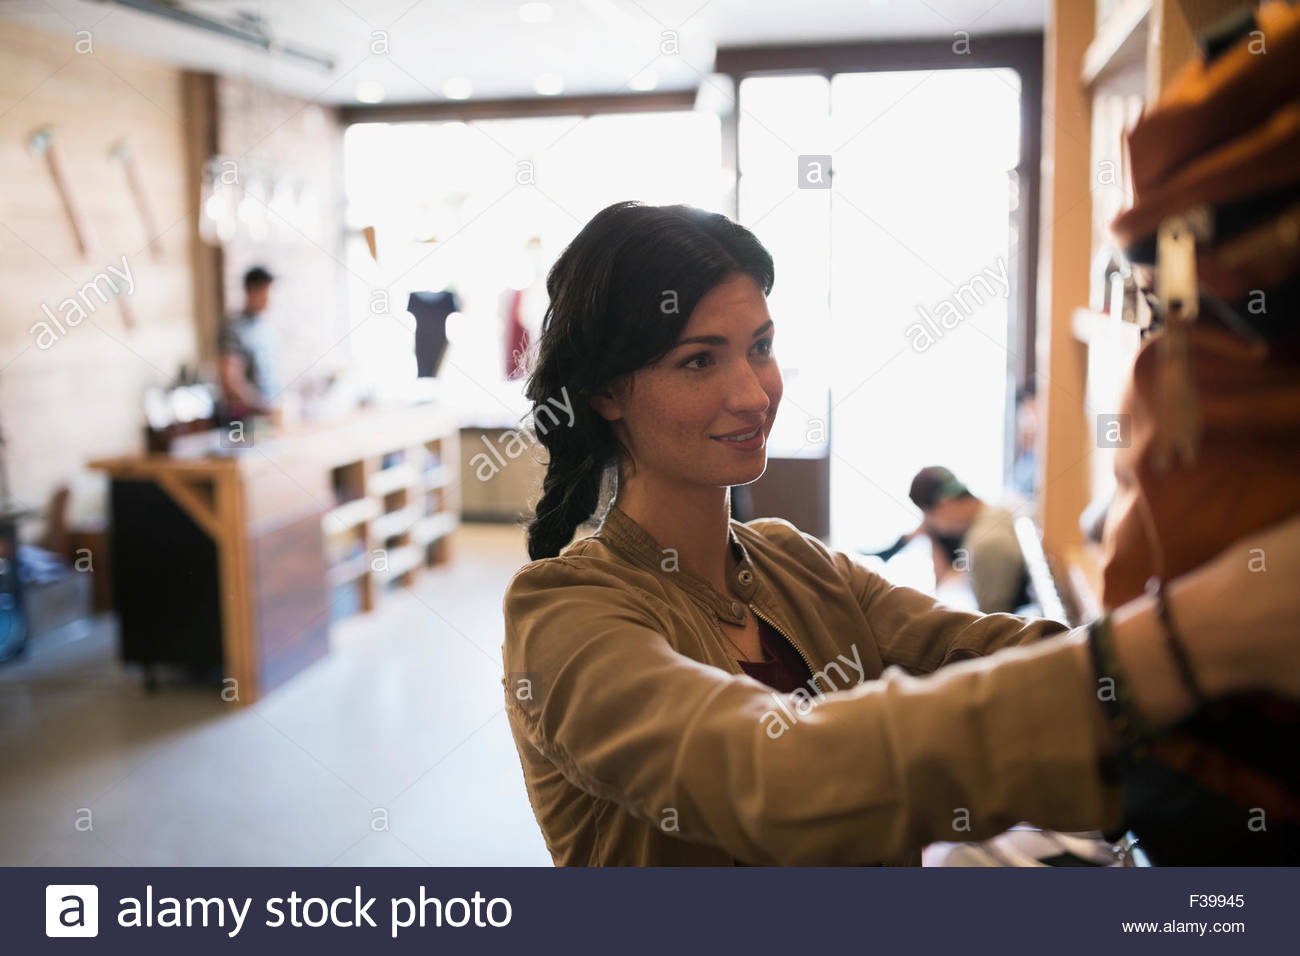 Woman browsing in shop - Stock Image